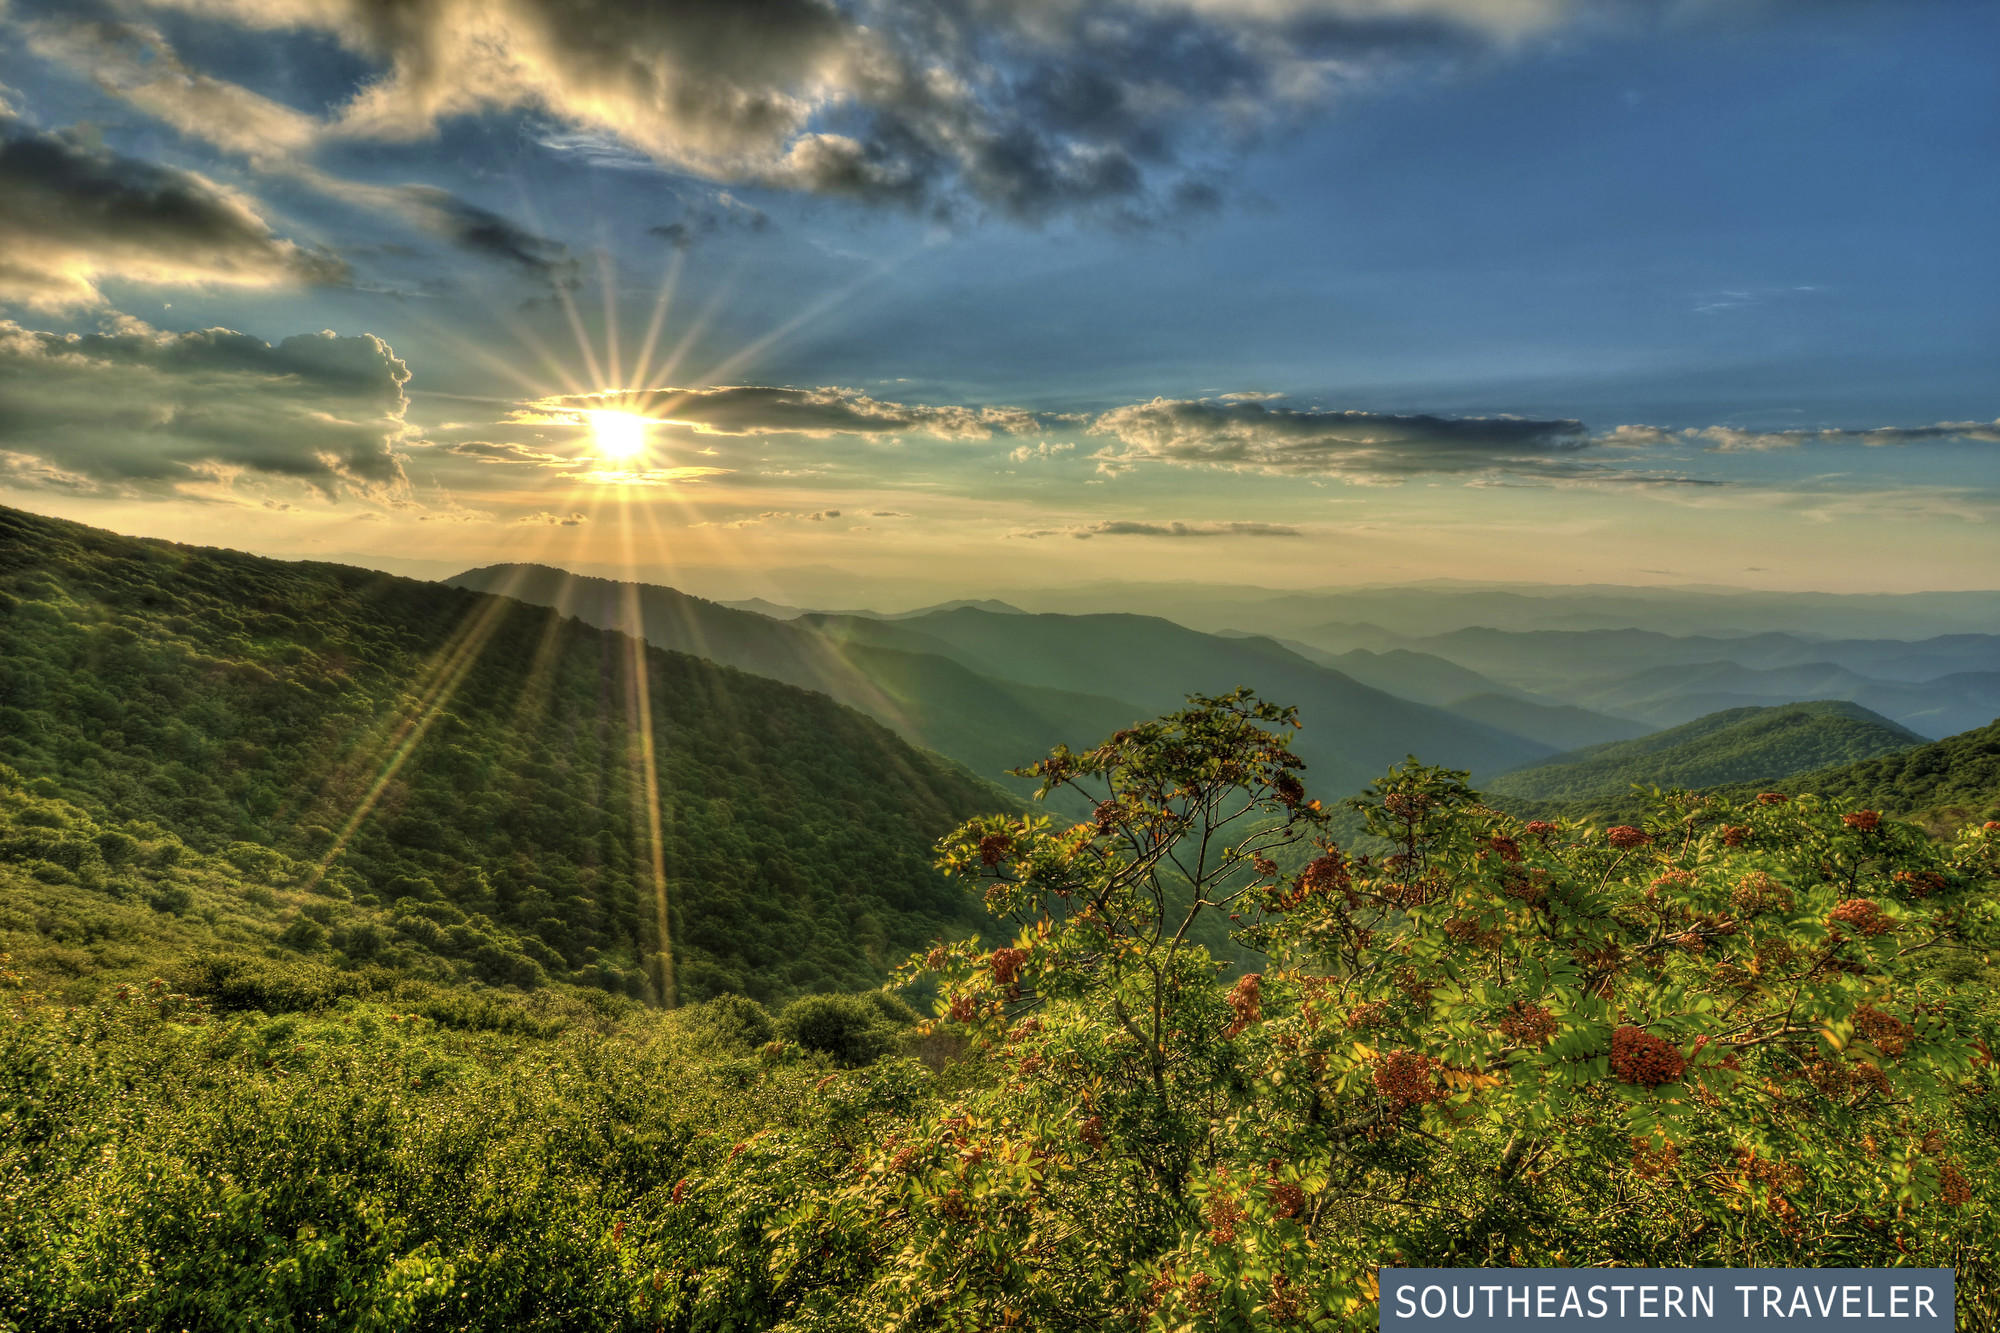 A sunset over the mountains at Craggy Gardens on the Blue Ridge Parkway near Asheville, North Carolina